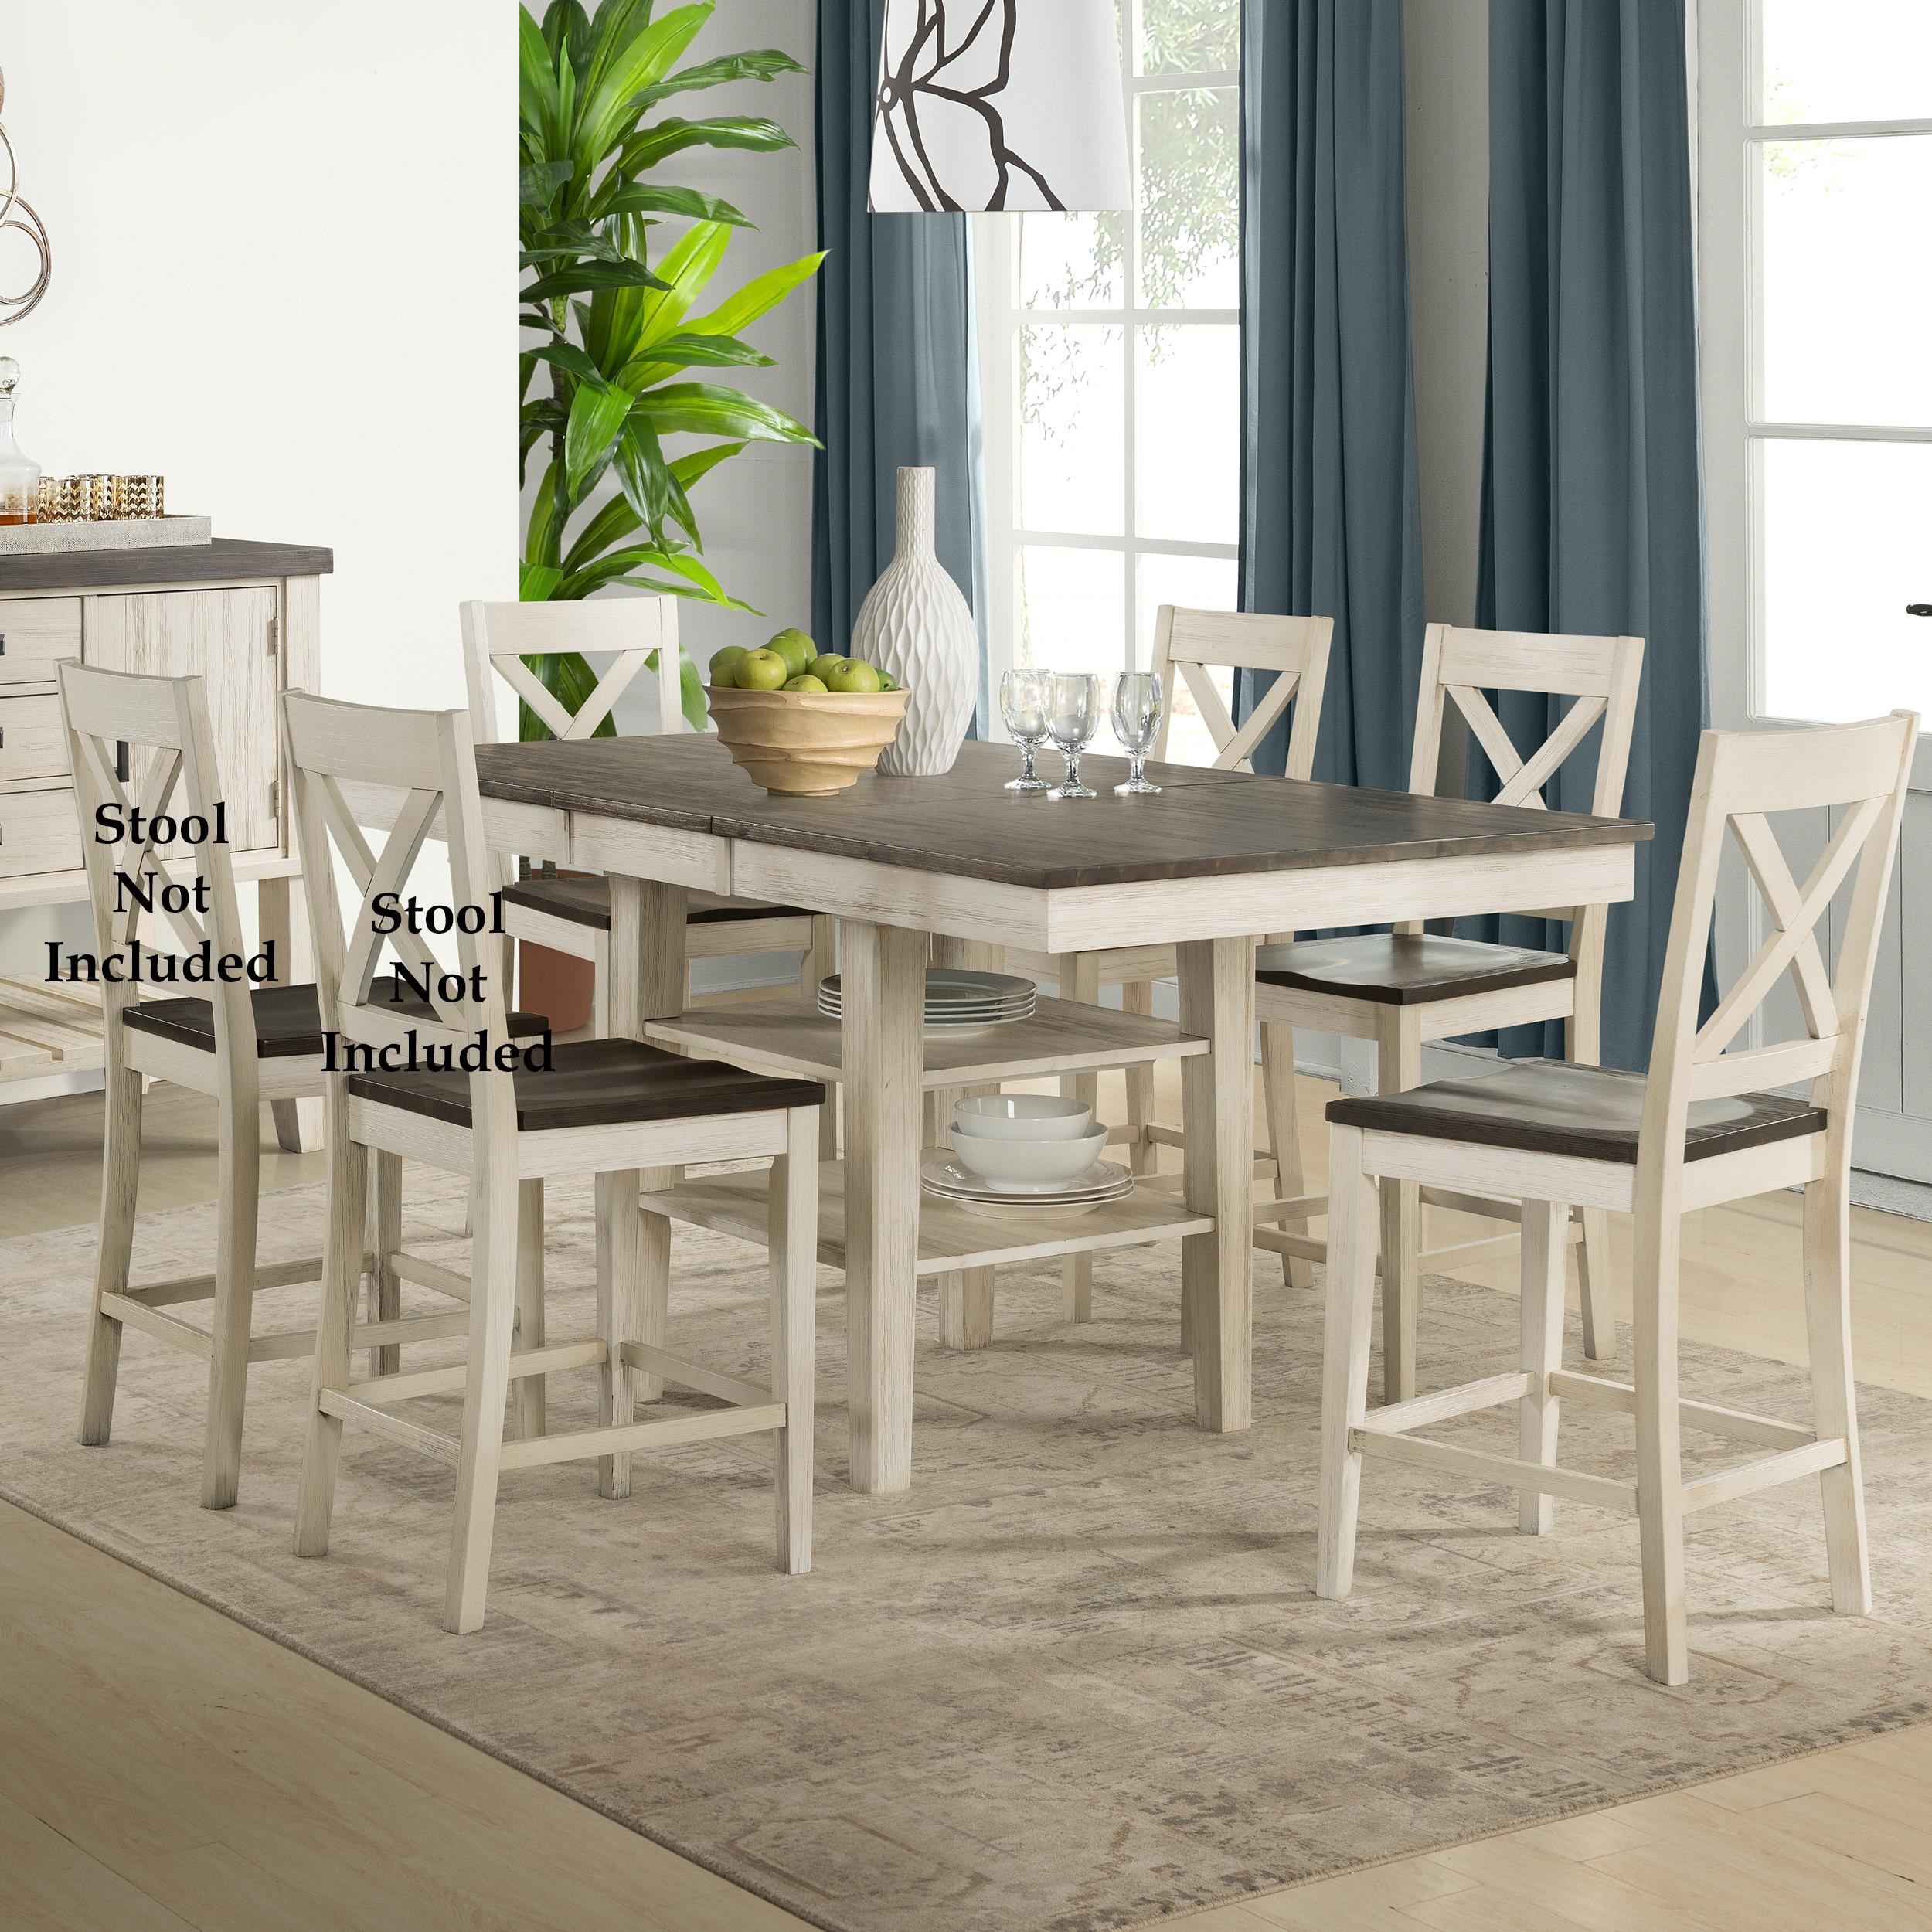 Transitional Counter Height Table and Chair